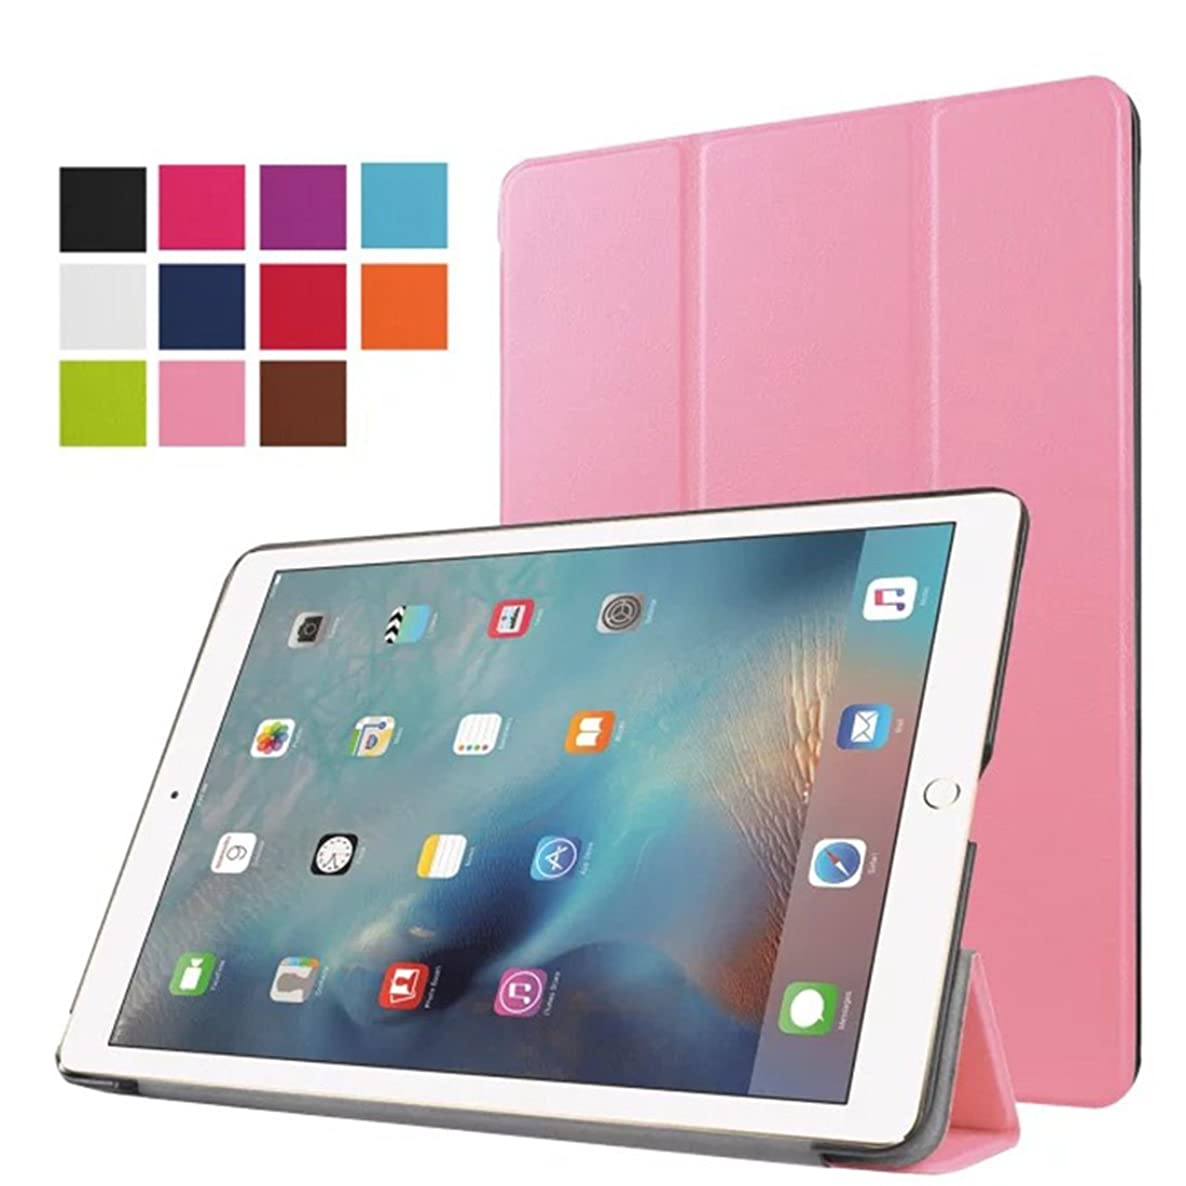 ZAOX New iPad 9.7 Inch Case Protector Slim Lightweight Smart Shell with Auto Wake/Sleep Premium Leather Folio Stand Cover Case for Apple iPad 9.7 inch/iPad Air 2 (pink)